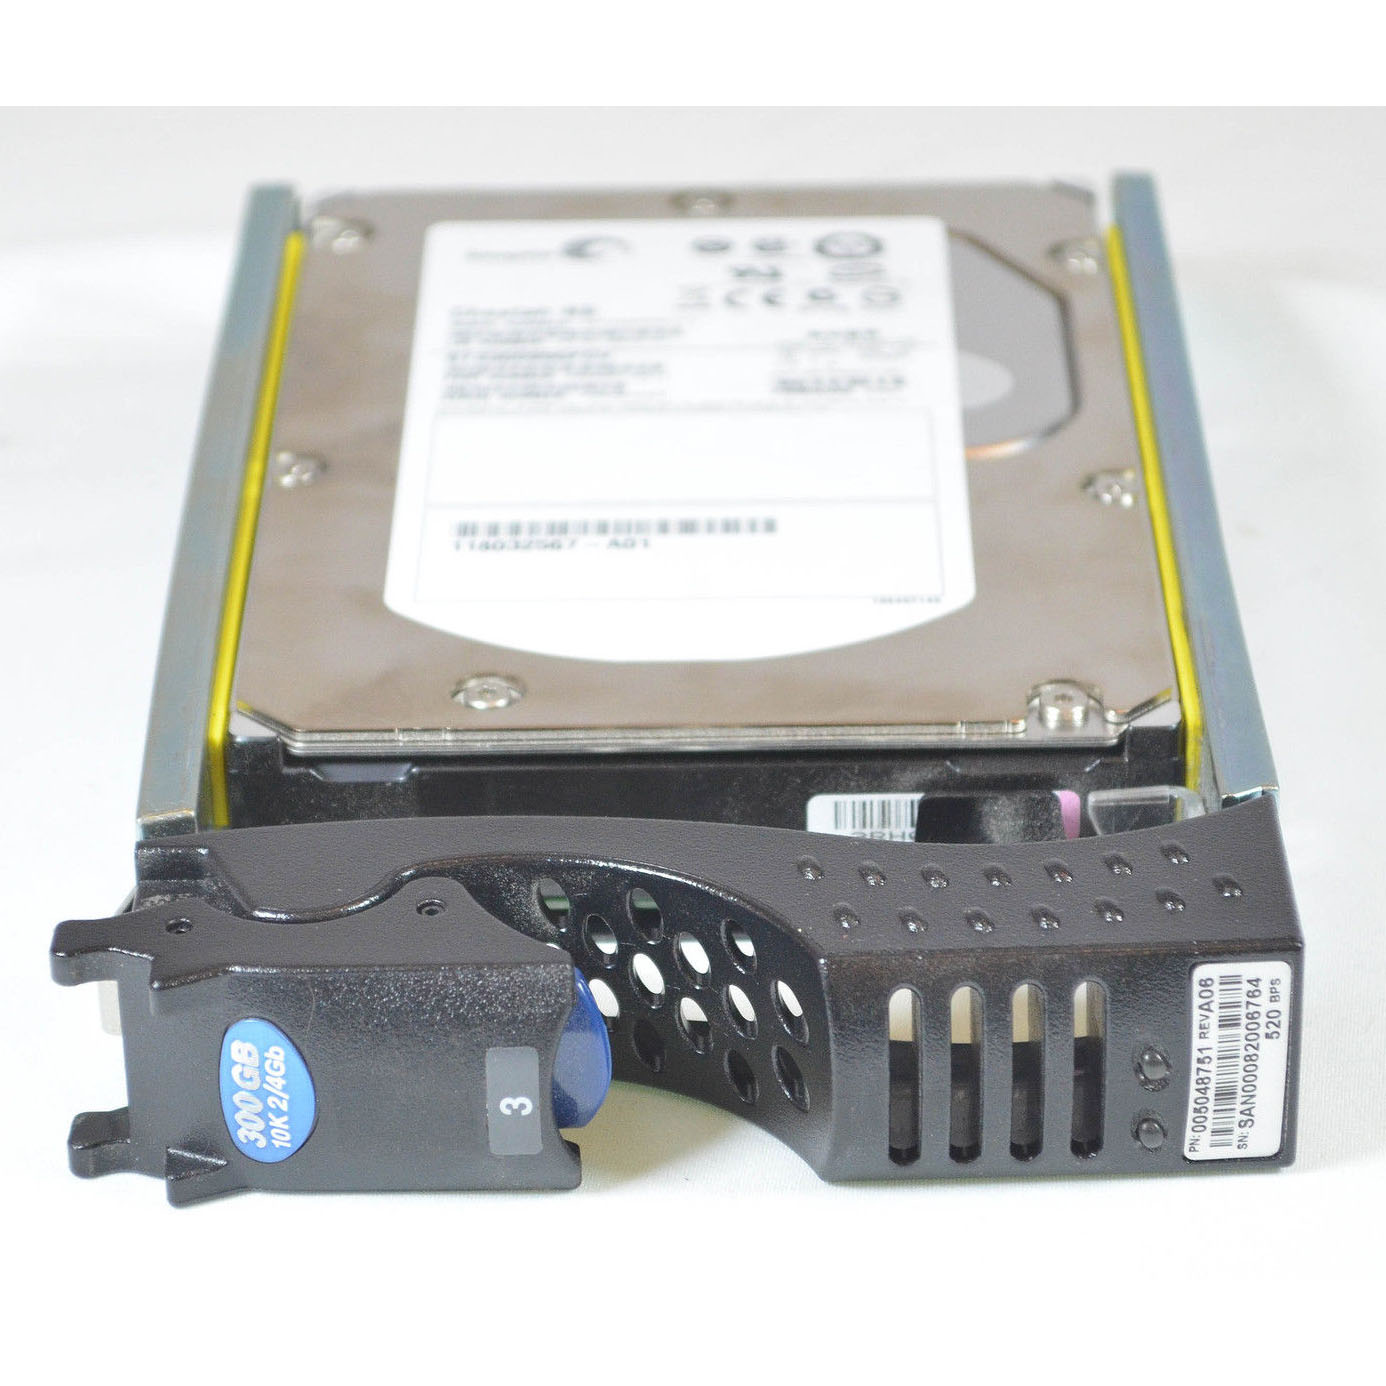 CX-4G10-300 EMC 4Gb/s 300GB 10k RPM FC Hard Drive 005048751, 005048953